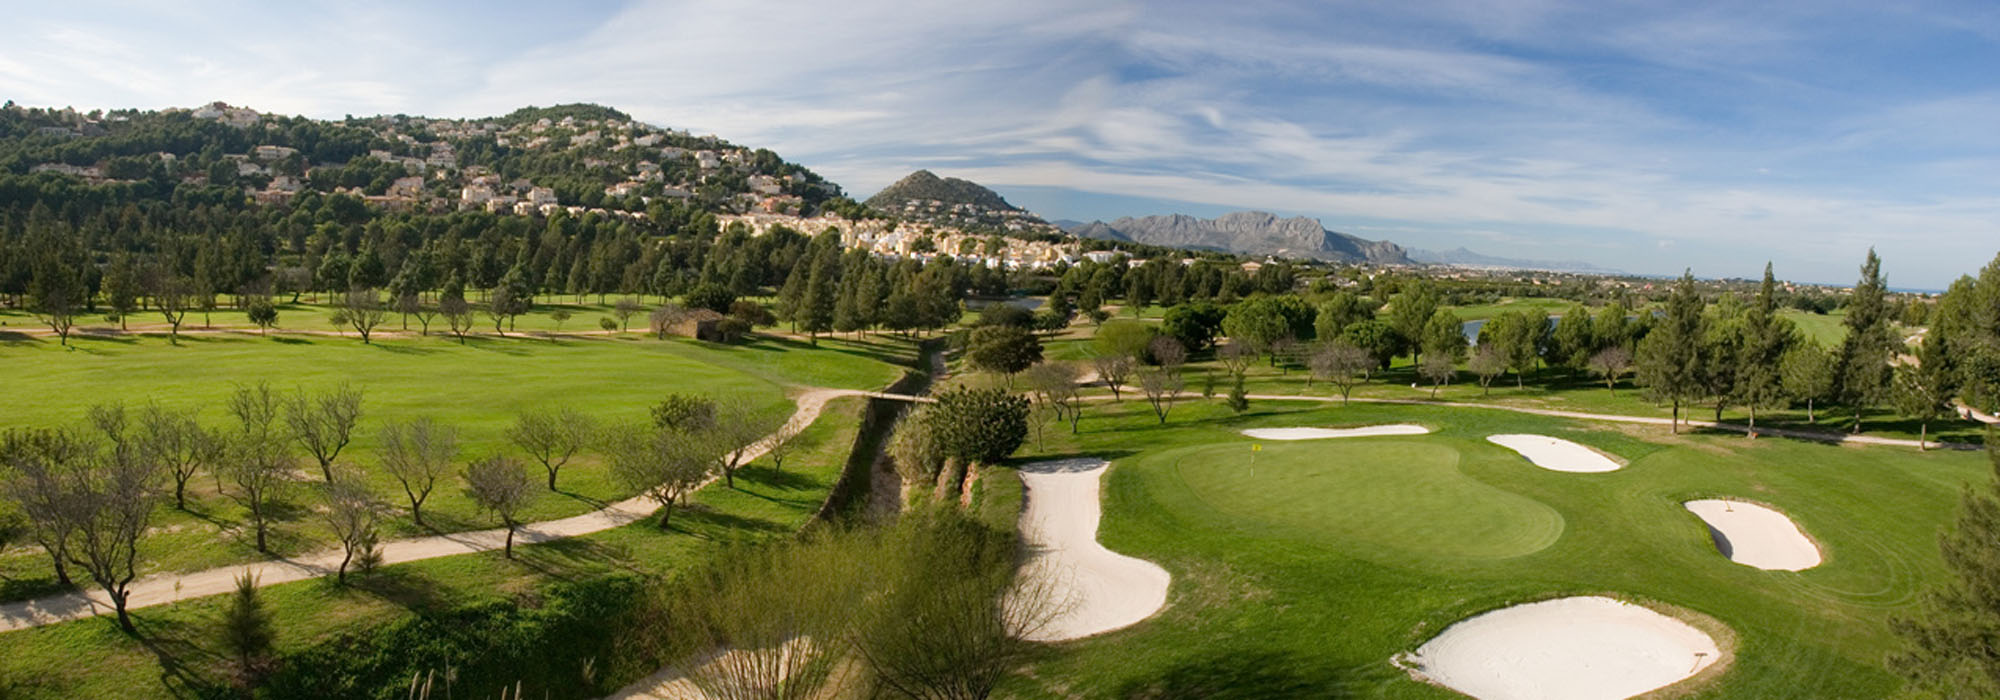 La Sella Golf – 27 hoyos